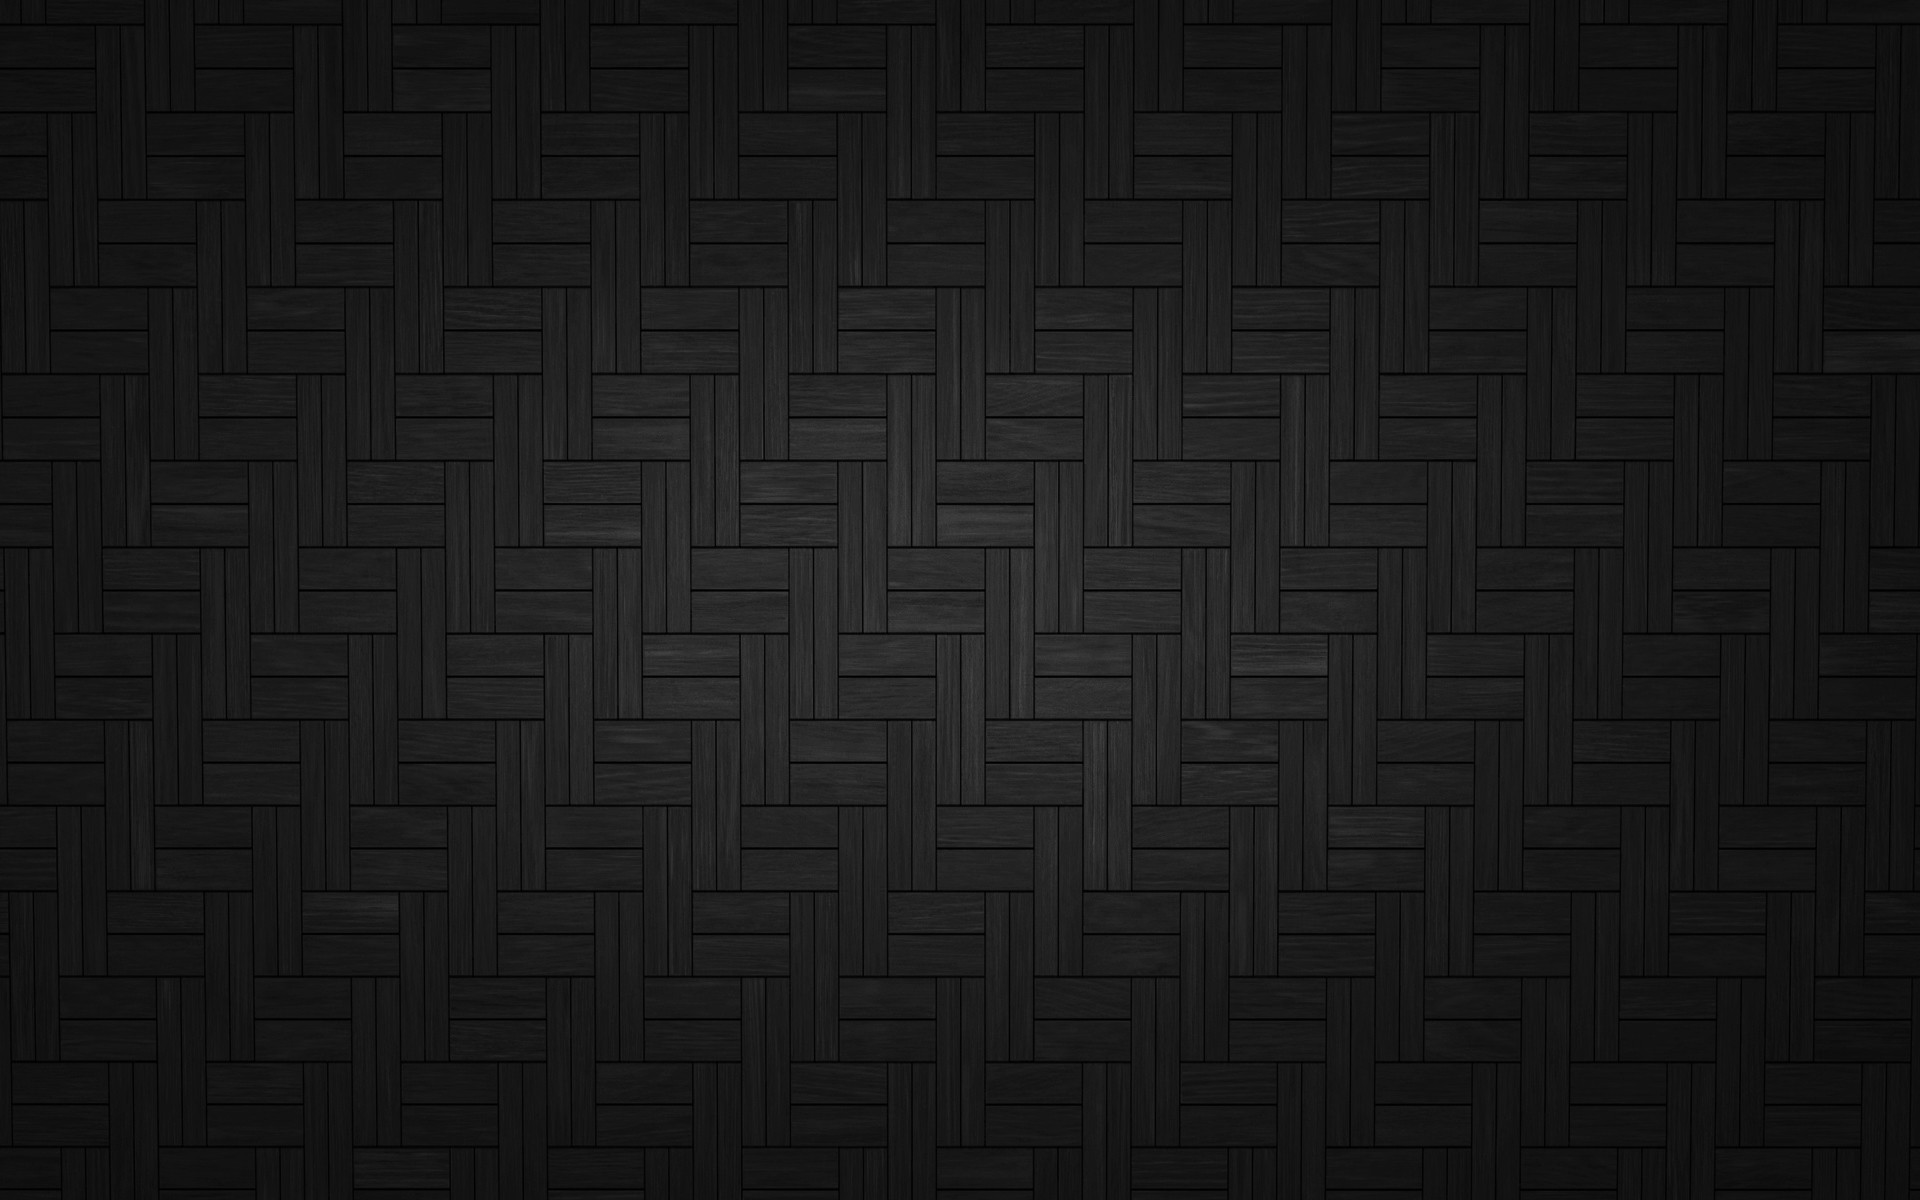 black wallpaper hd download free stunning hd wallpapers for